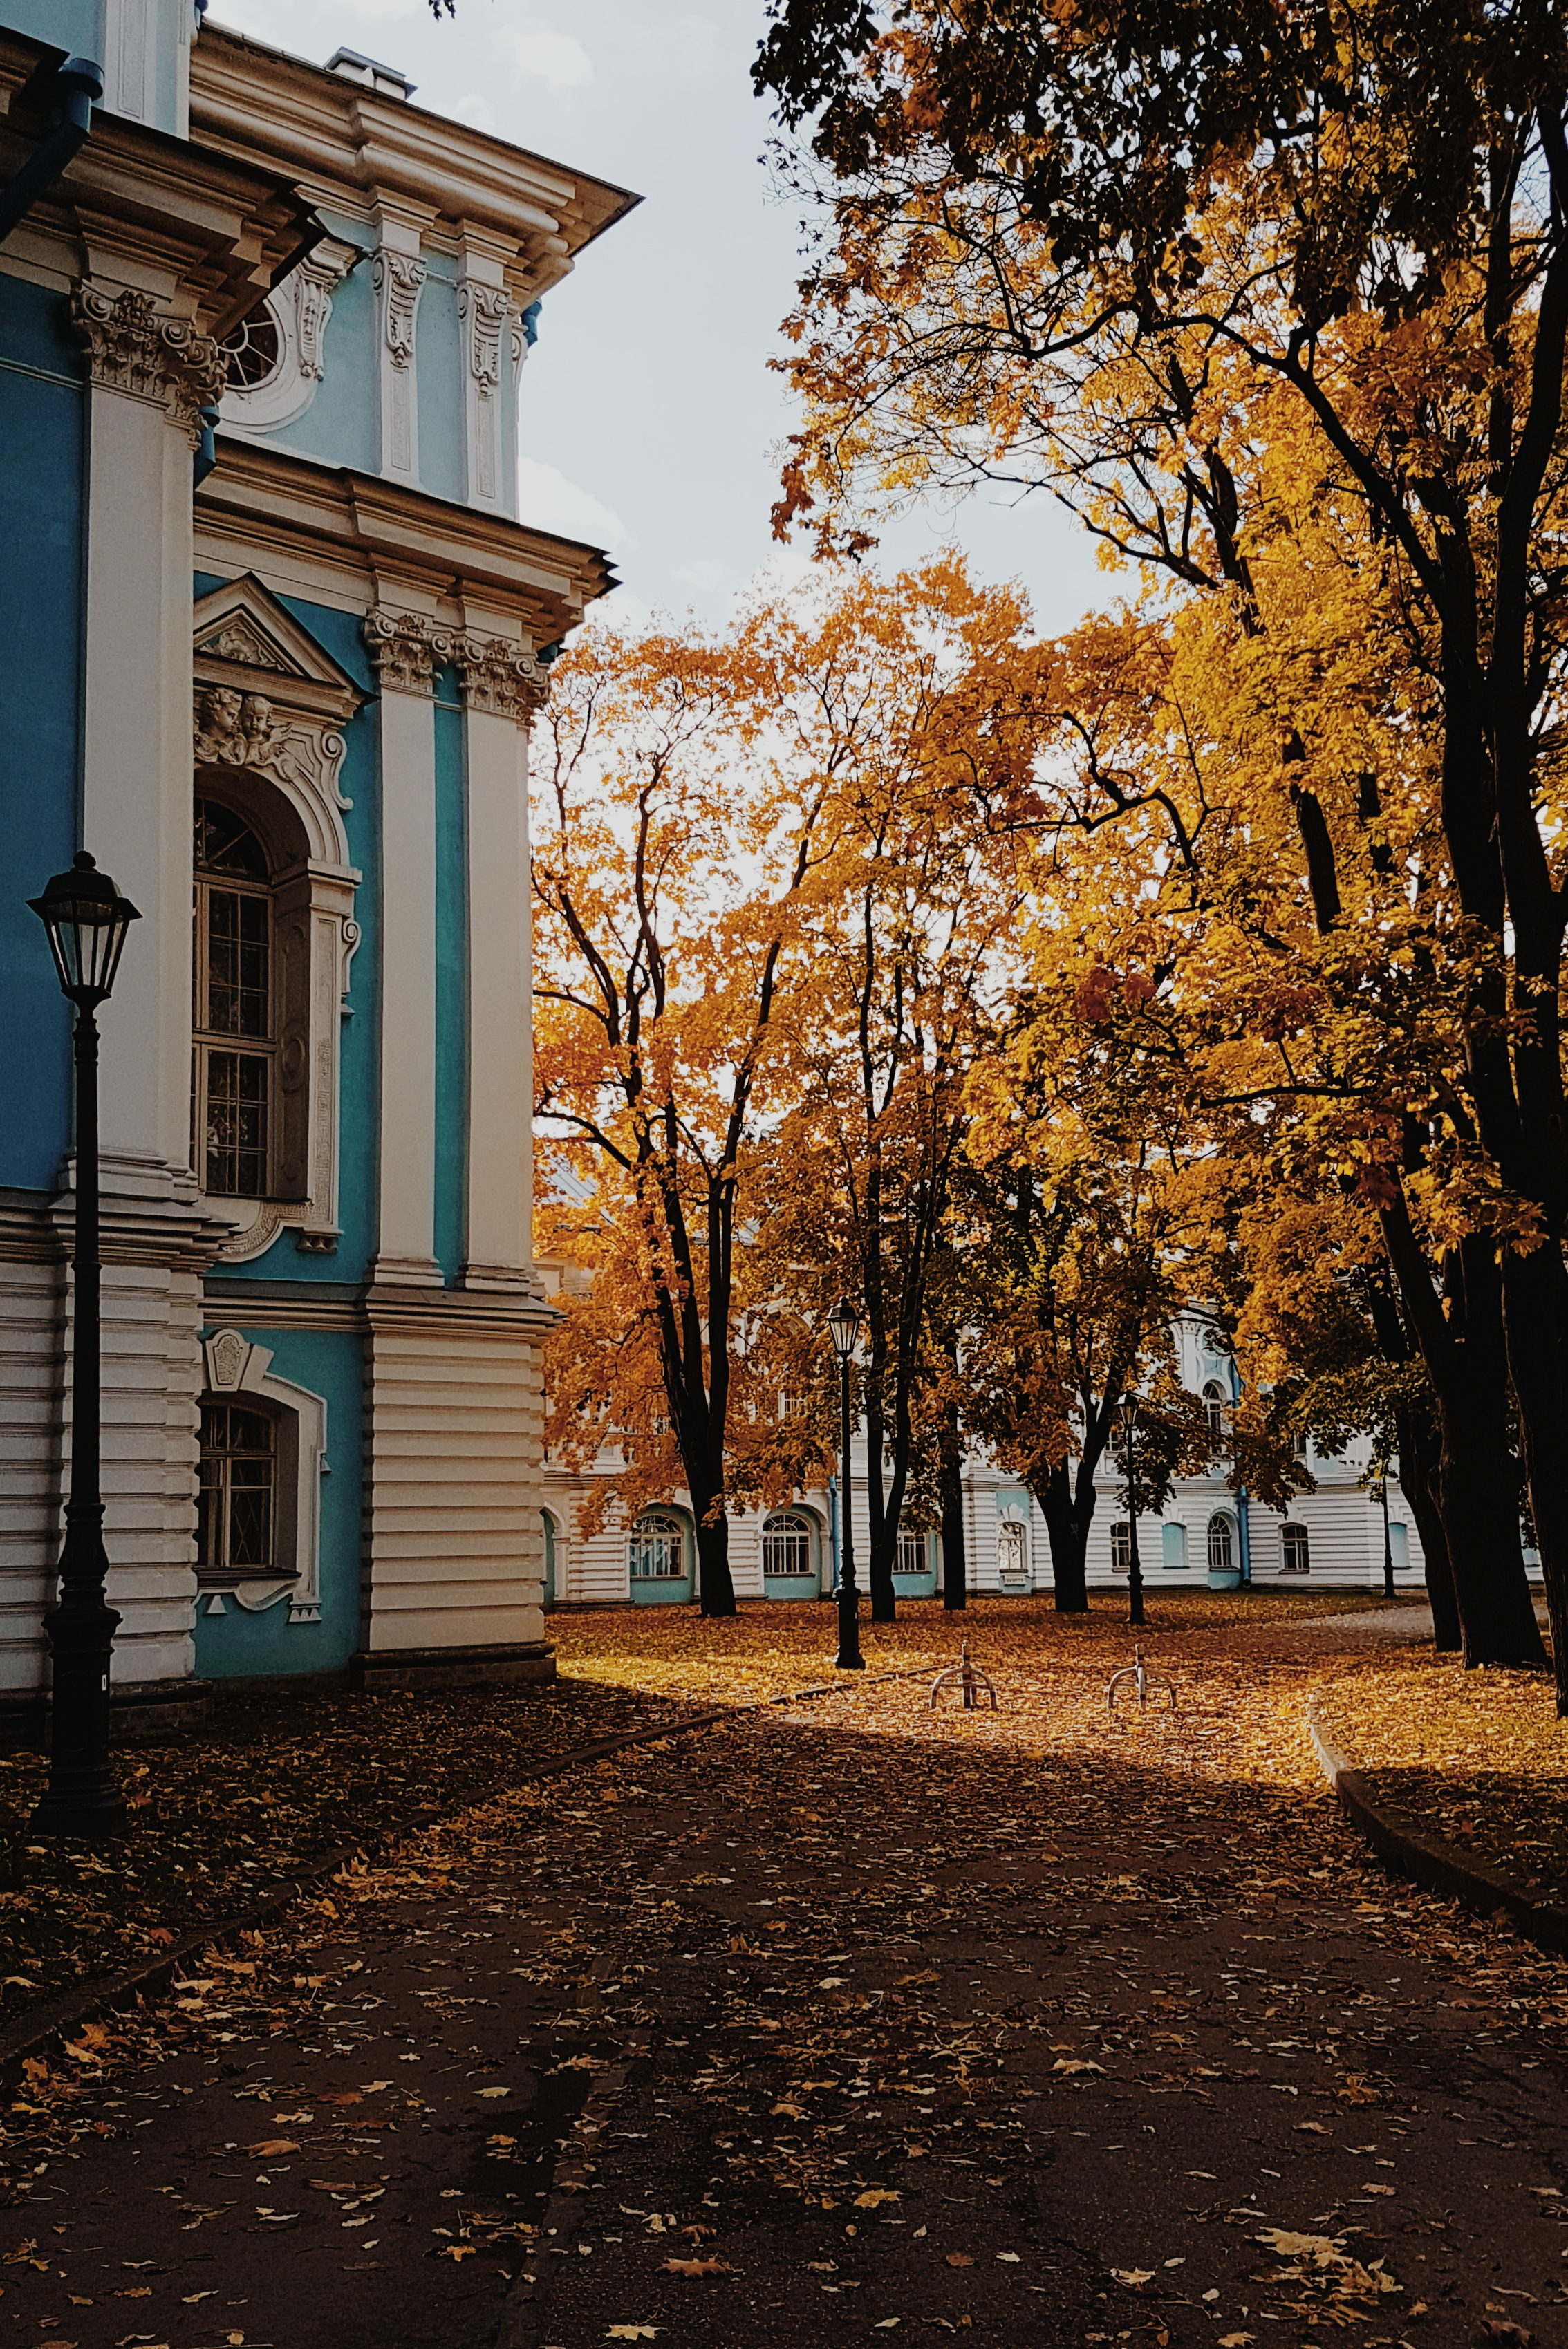 A rare sunny autumn day at St. Petersburg State University